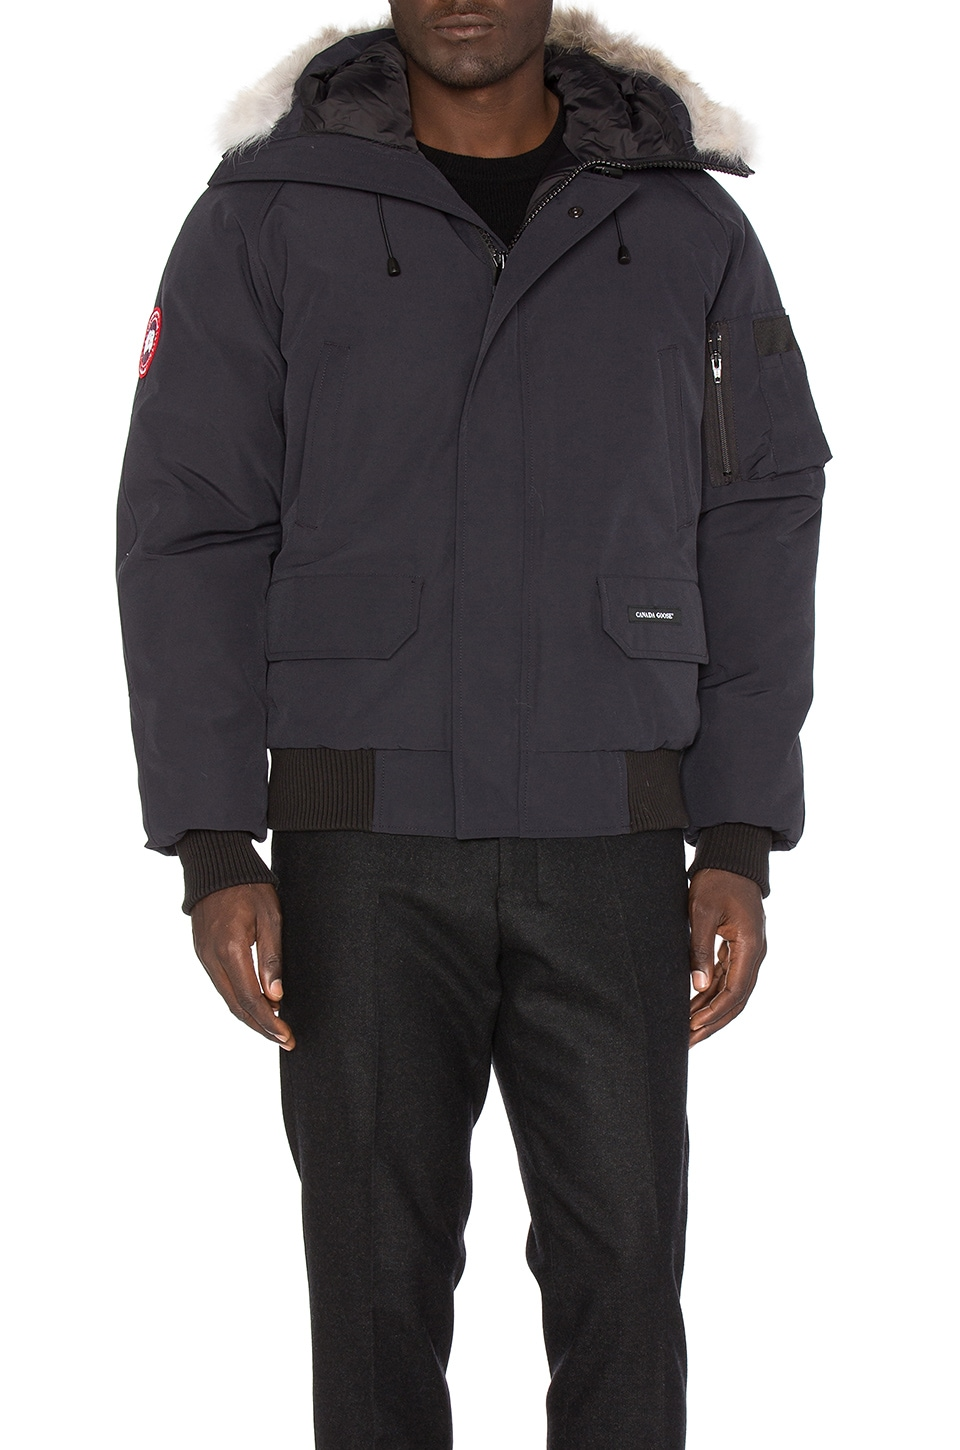 Chilliwack Bomber with Coyote Fur by Canada Goose